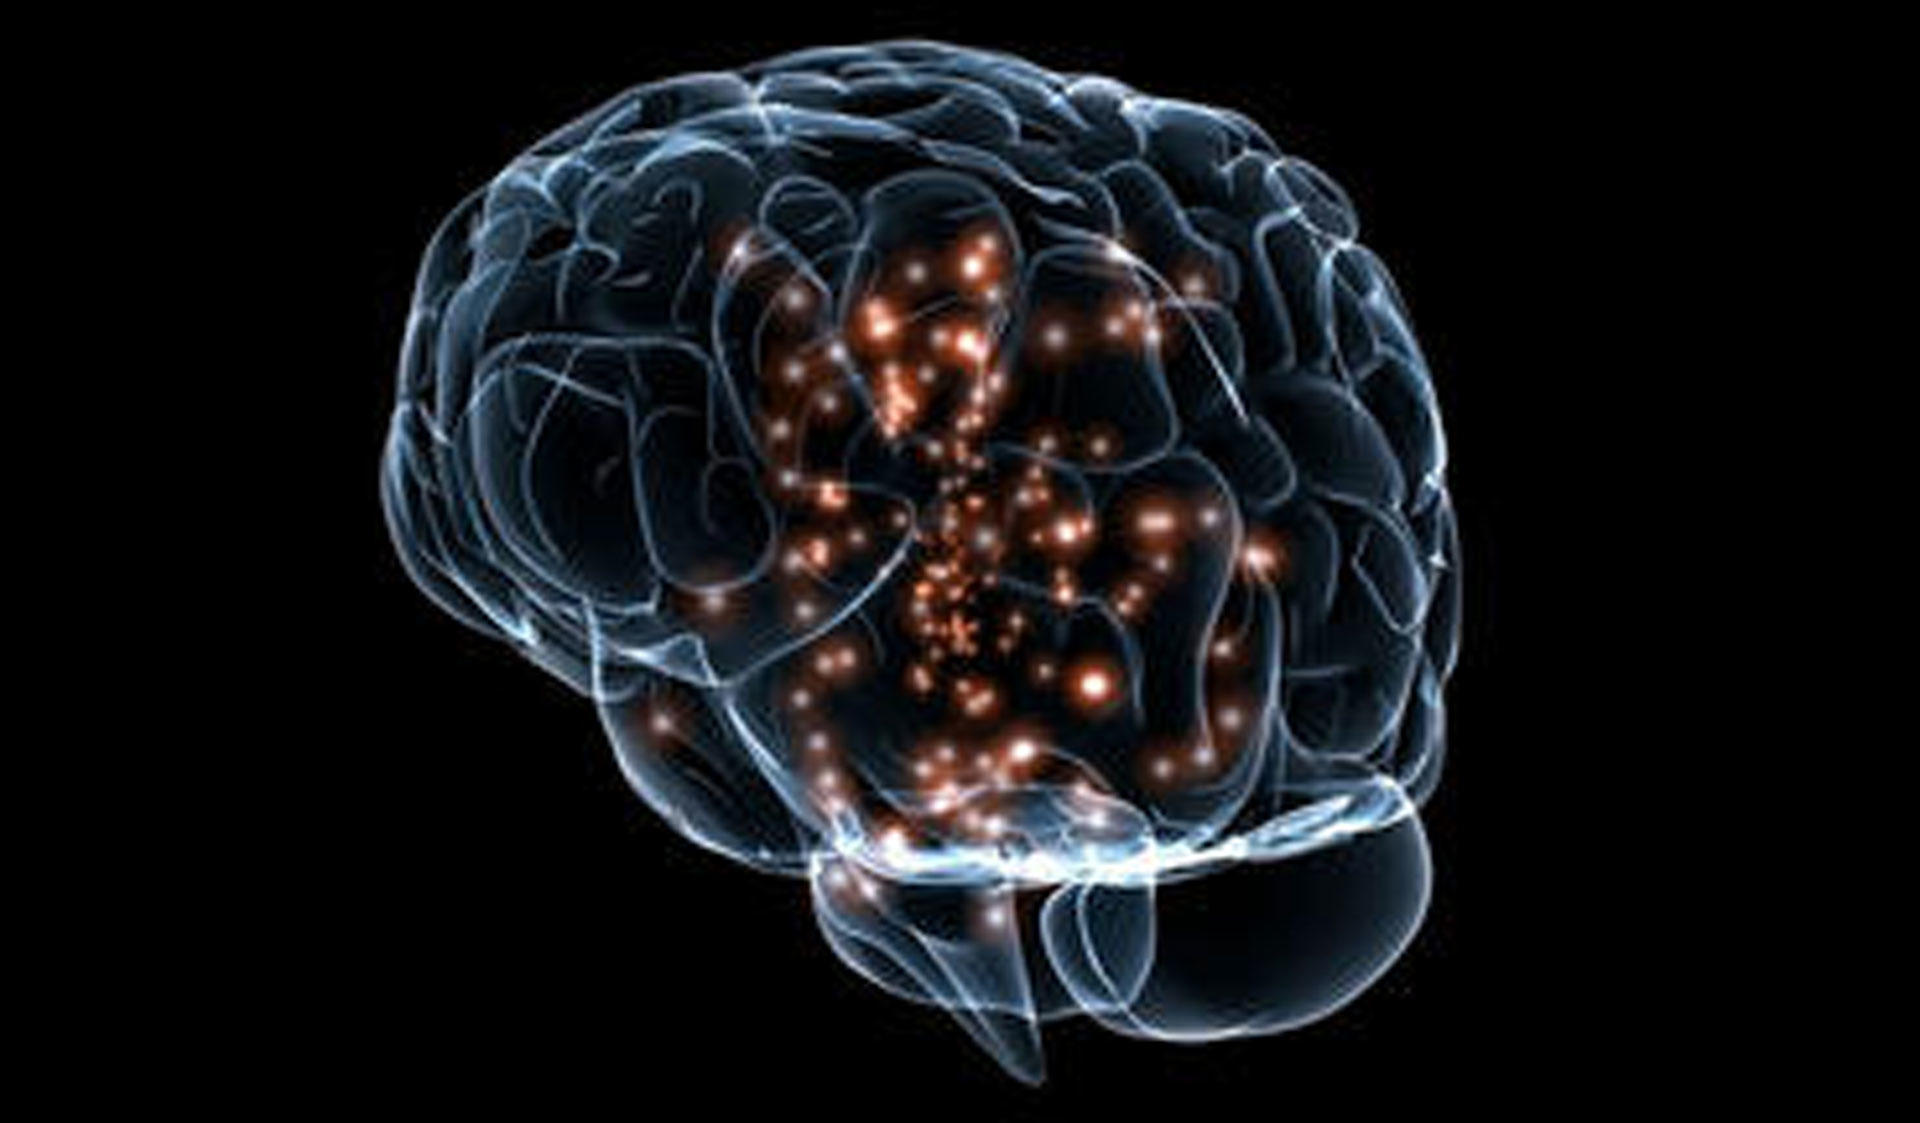 Transparent brains and lights. Image of the Master's Programme in Neuroscience at the University of Helsinki.